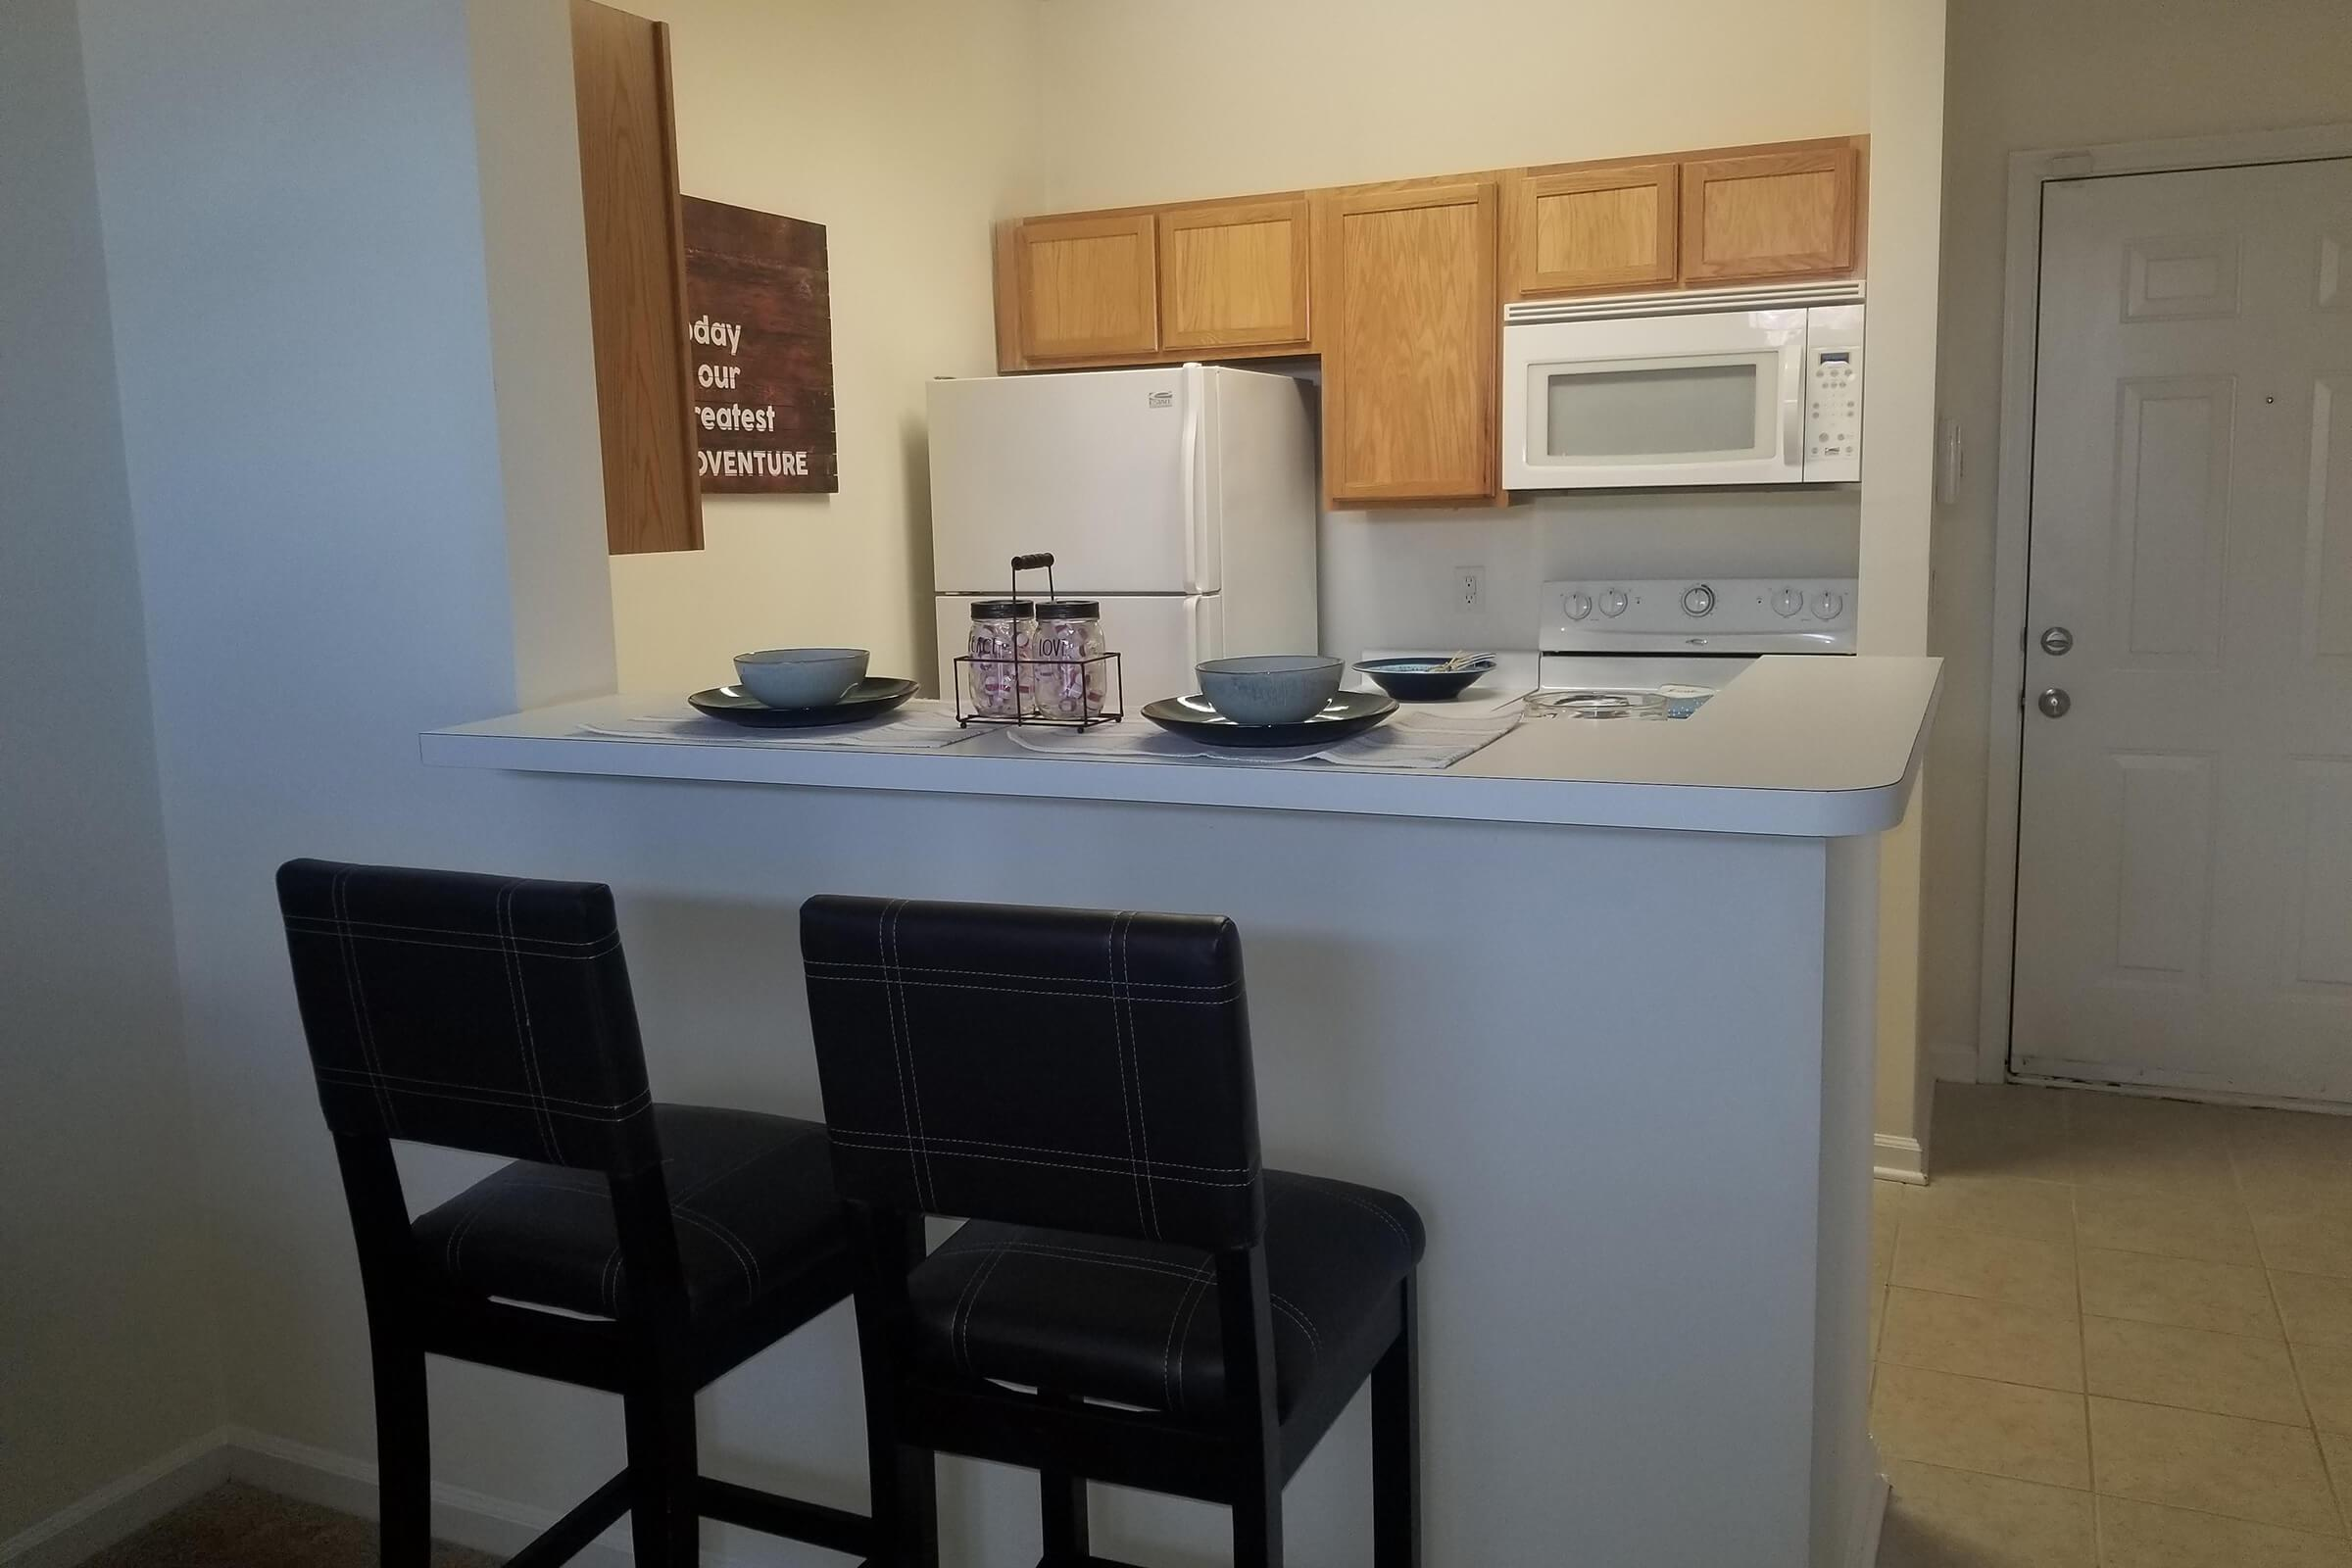 a kitchen with a white refrigerator freezer sitting in a chair